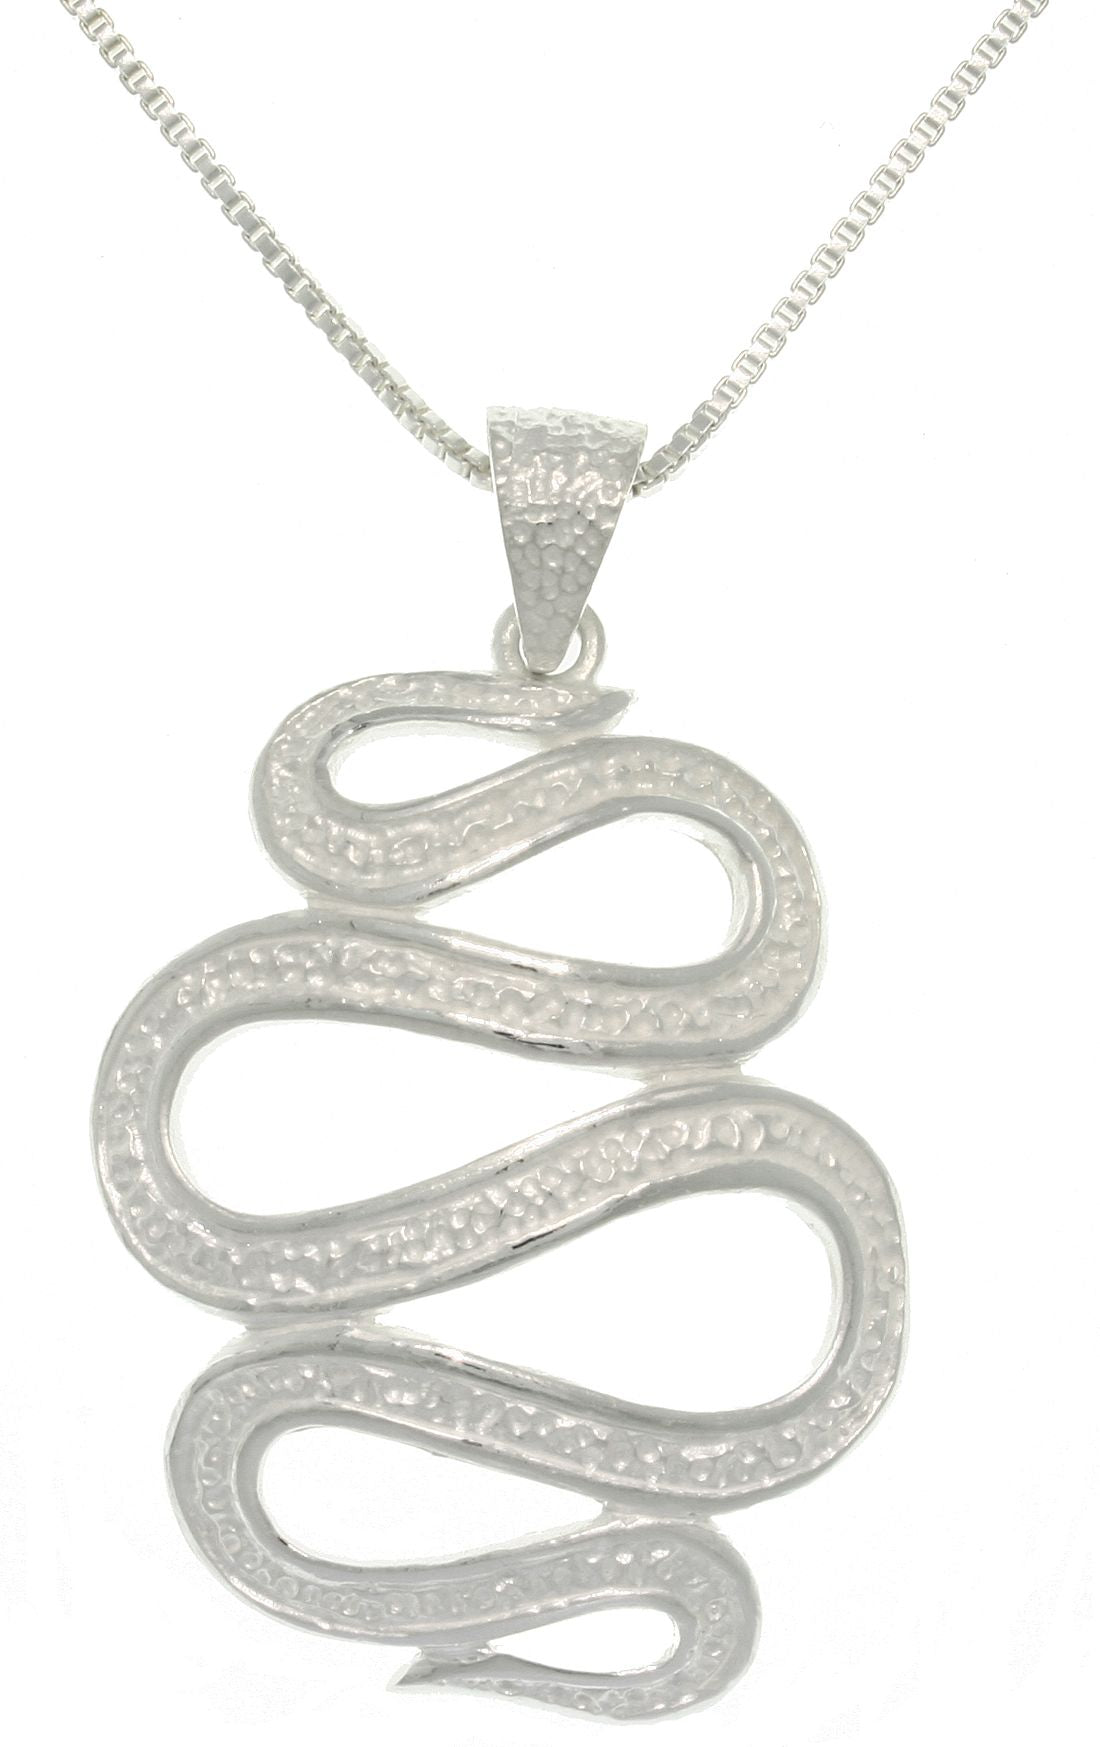 Jewelry Trends Sterling Silver Snake Spiral Pendant With 18 Inch Chain Necklace